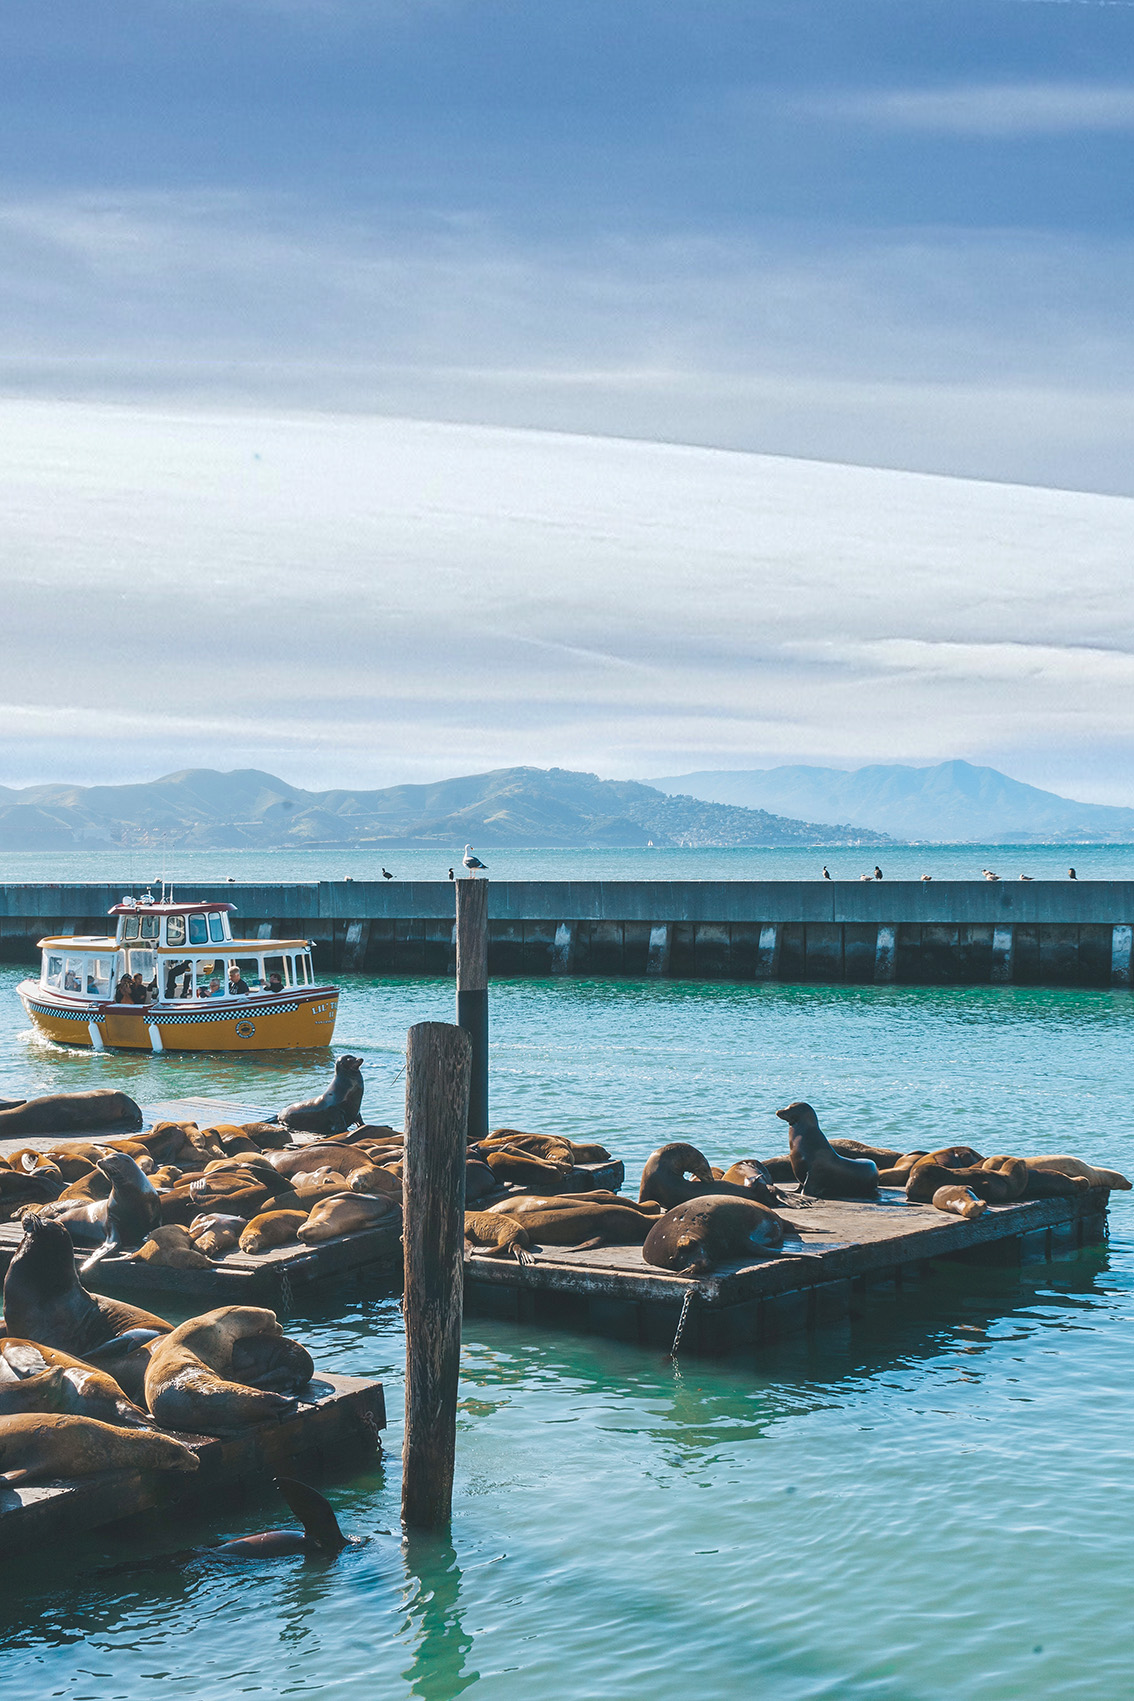 51 10 most instagrammable places in San Francisco you don't have to miss!